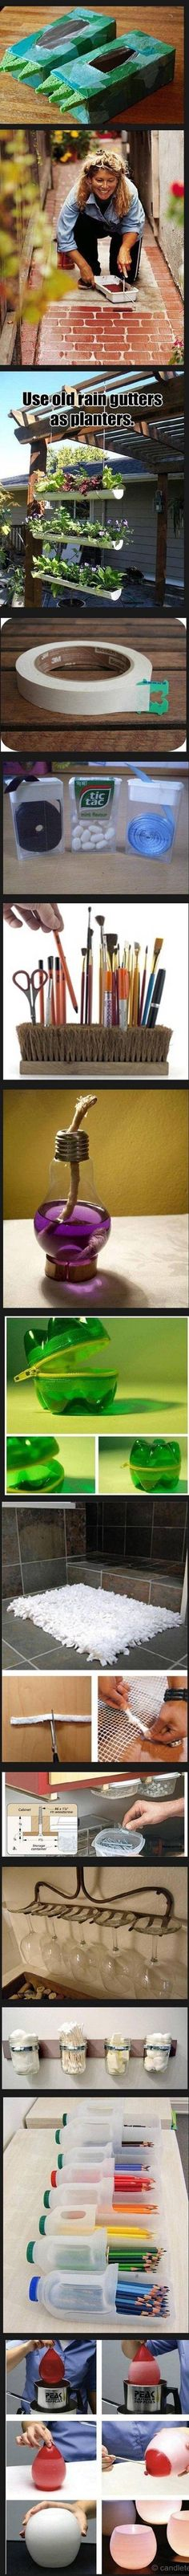 diy - Every single one of these ideas are SICK! So inventive, so creative, so DIY!